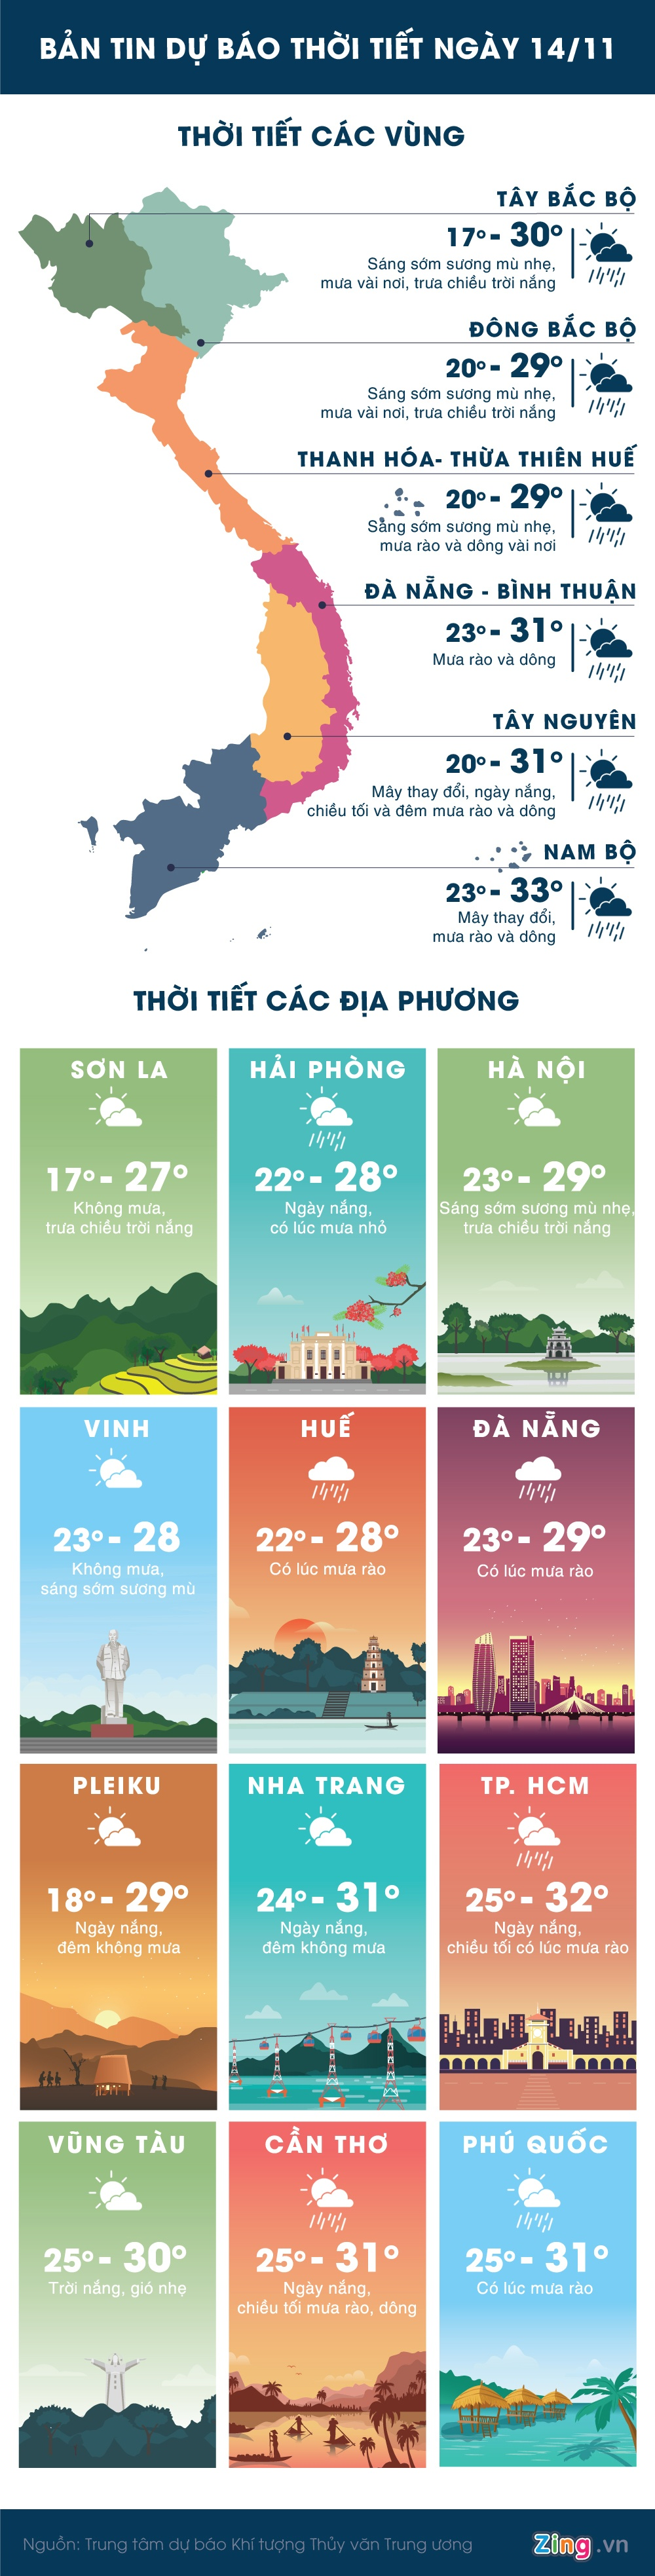 thoi tiet ngay 14/11 anh 1